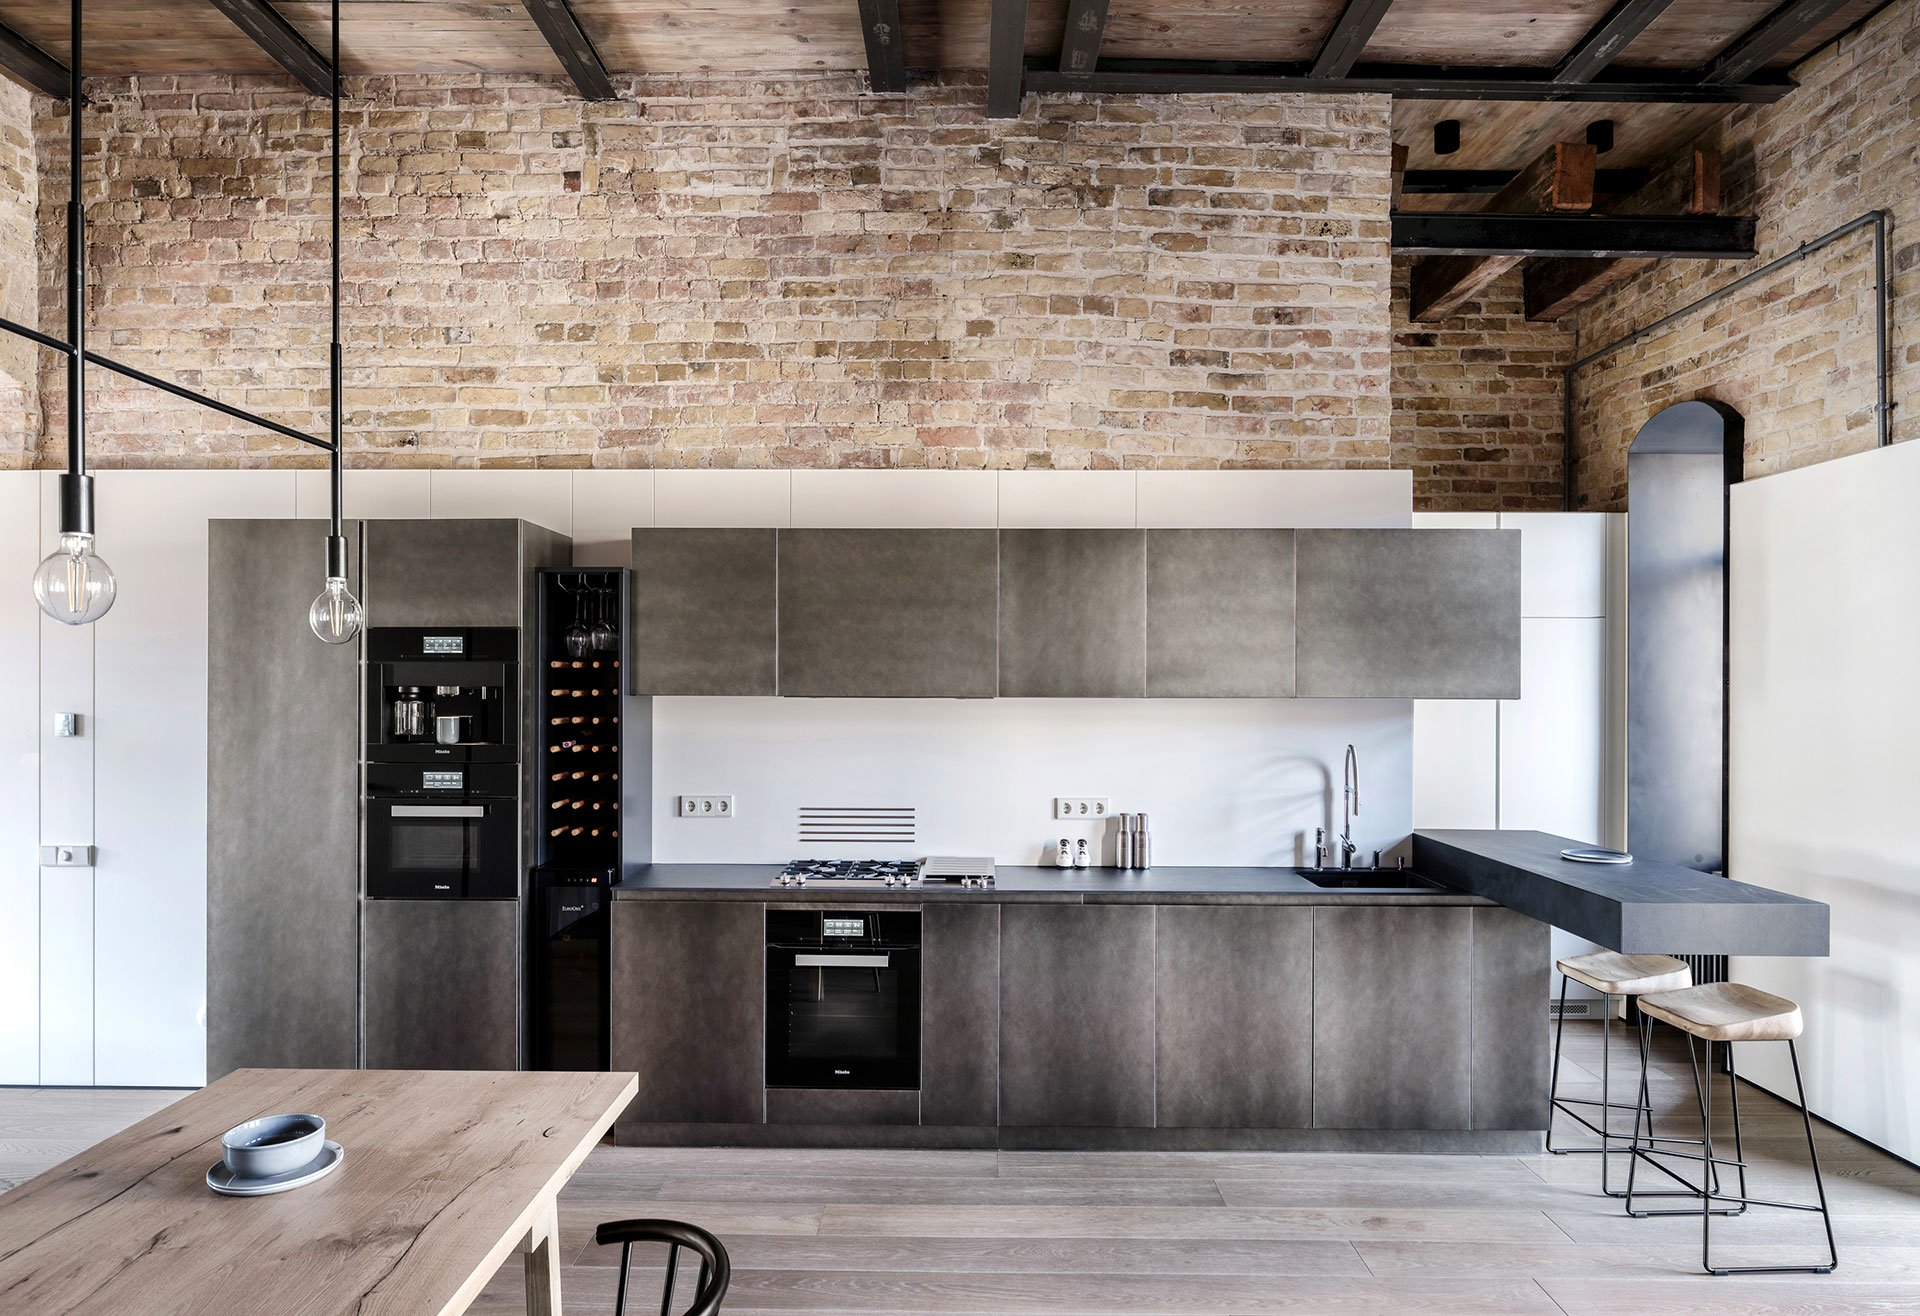 The kitchen is done with dark metal cabinets and a floating breakfast space with stools